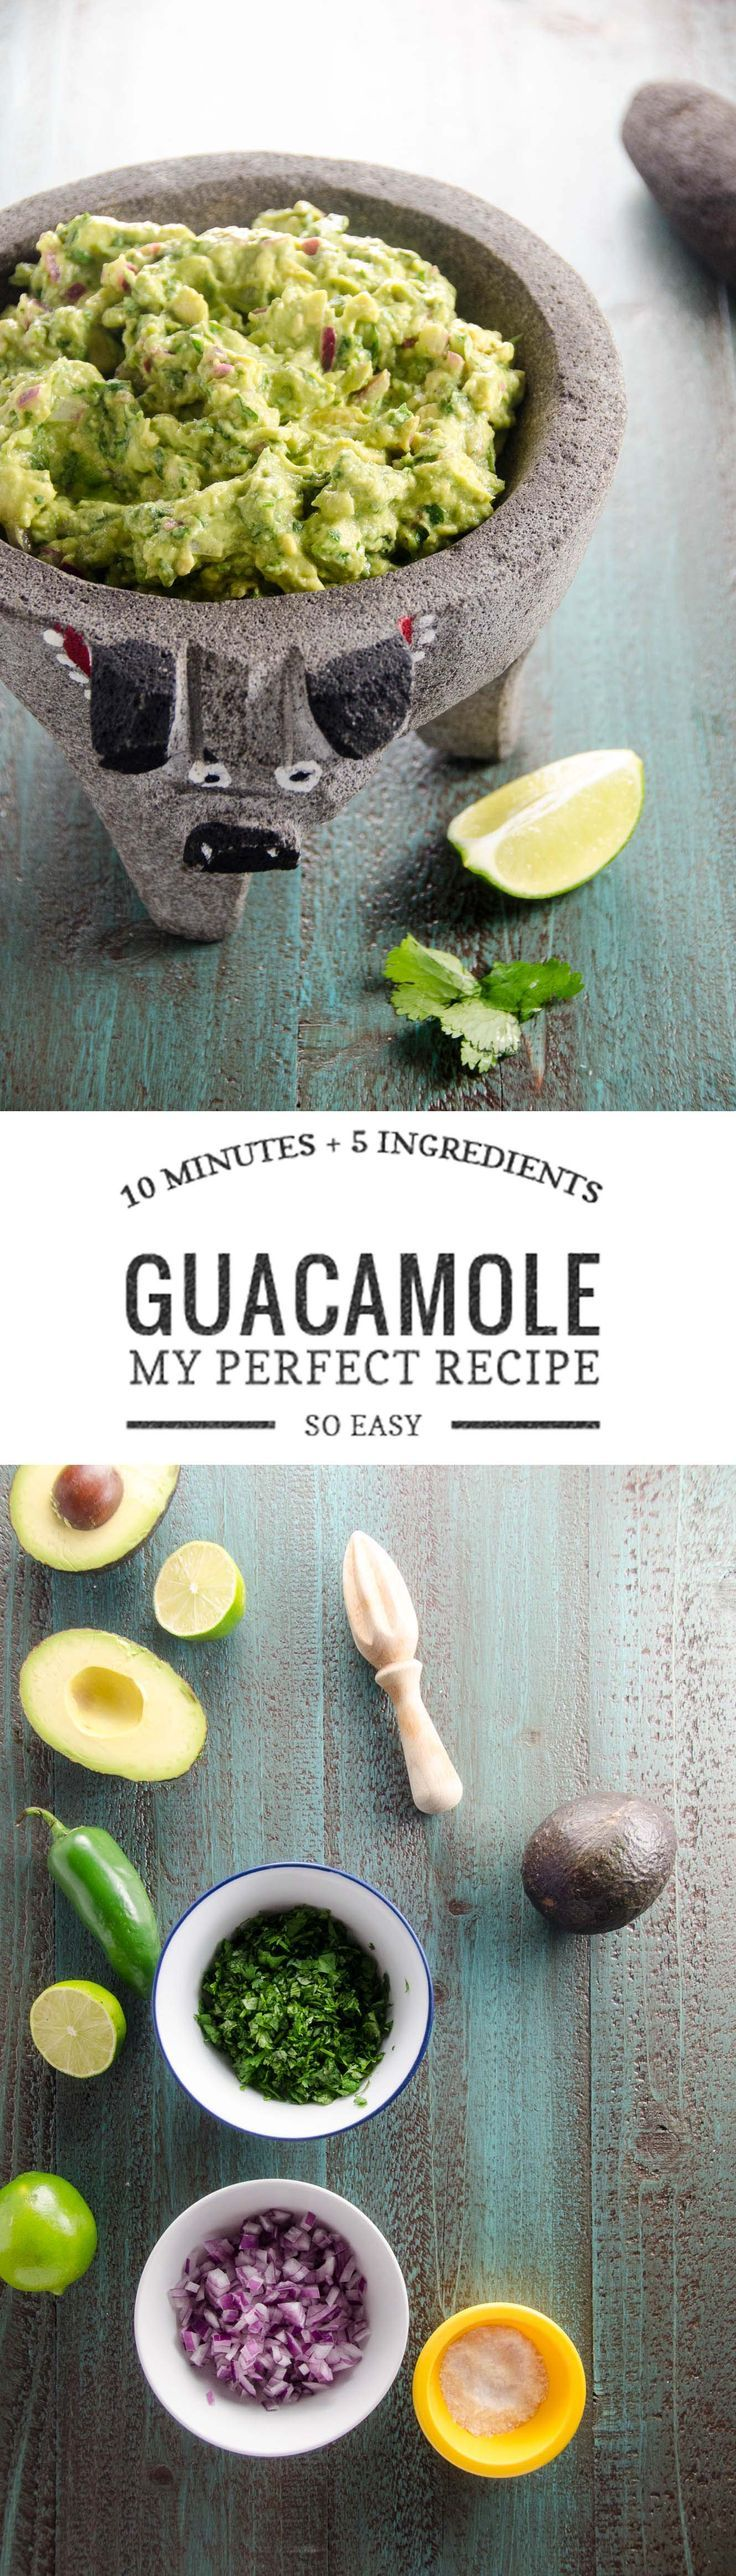 This easy recipe for perfect guacamole will disappear from your next party in no time. Just 10 minutes and 5 ingredients.  via @umamigirl